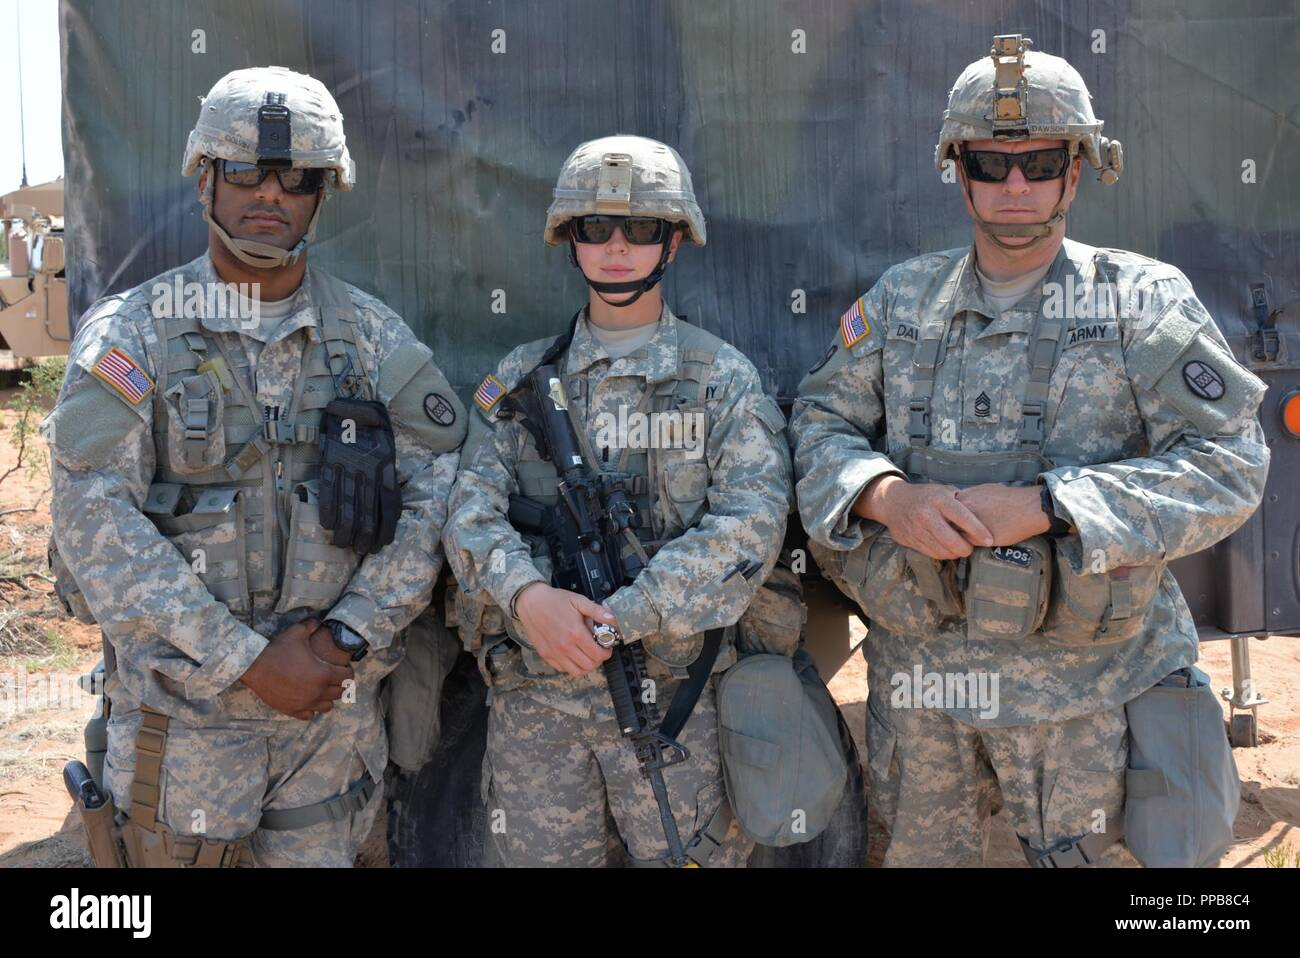 """(Left to right) Capt. Ronald Colvin, Charlie Battery 1-113th Field Artillery Commander, 1st. Lt. Carolyn Horton, and Master Sgt. Brian Dawson. 1st. Lt Horton credits Capt. Colvin and Master Sgt. Dawson as her mentors for making an impact in her success. Charlie Battery, 1-113th Field Artillery Regiment """"Axehandles"""" iis part of the 30th Armored Brigade's eXportable Combat Training Capability (XCTC) exercise with over 4,000 Citizen Soldiers from North Carolina, South Carolina, West Virginia, Minnesota, and the country of Moldova. All will hone their combat skills of """"Shoot, Move, Communicate, an - Stock Image"""